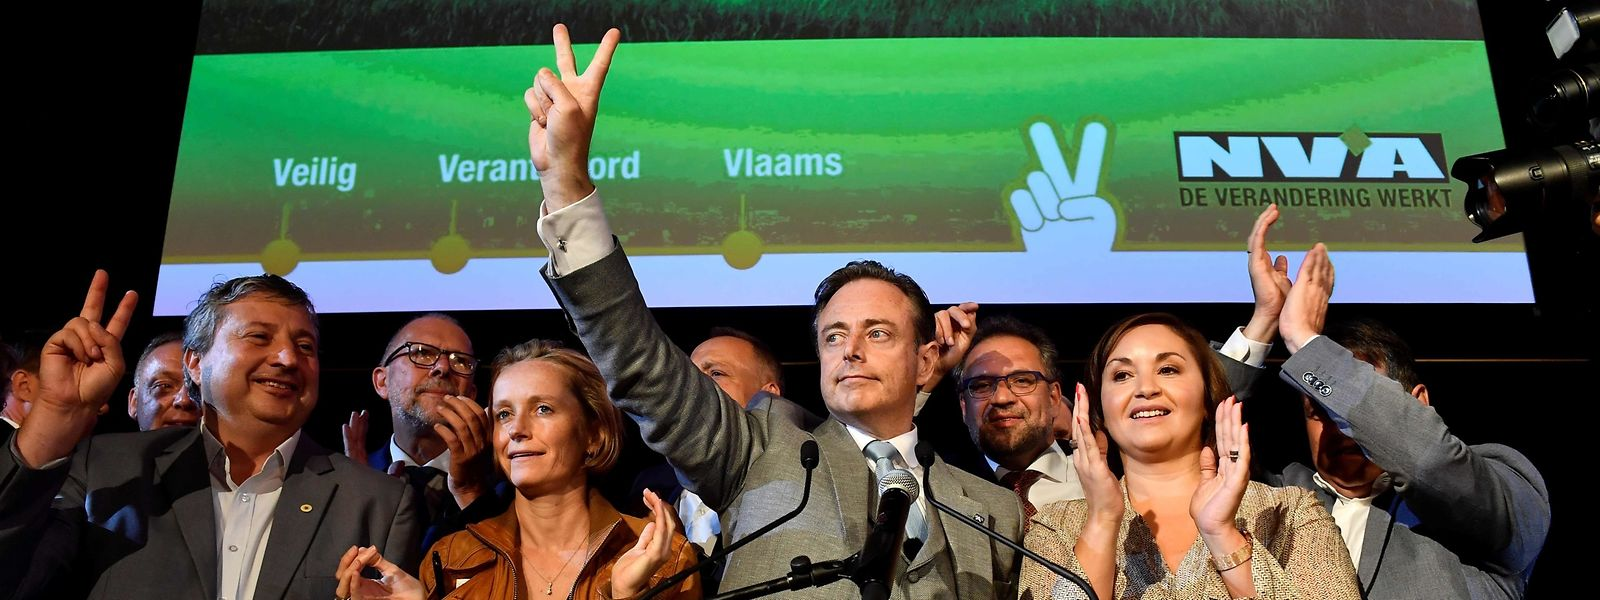 Le parti nationaliste flamand N-VA, emmené par le maire d'Anvers Bart de Wever (au centre sur la photo) conserve sa position dominante.